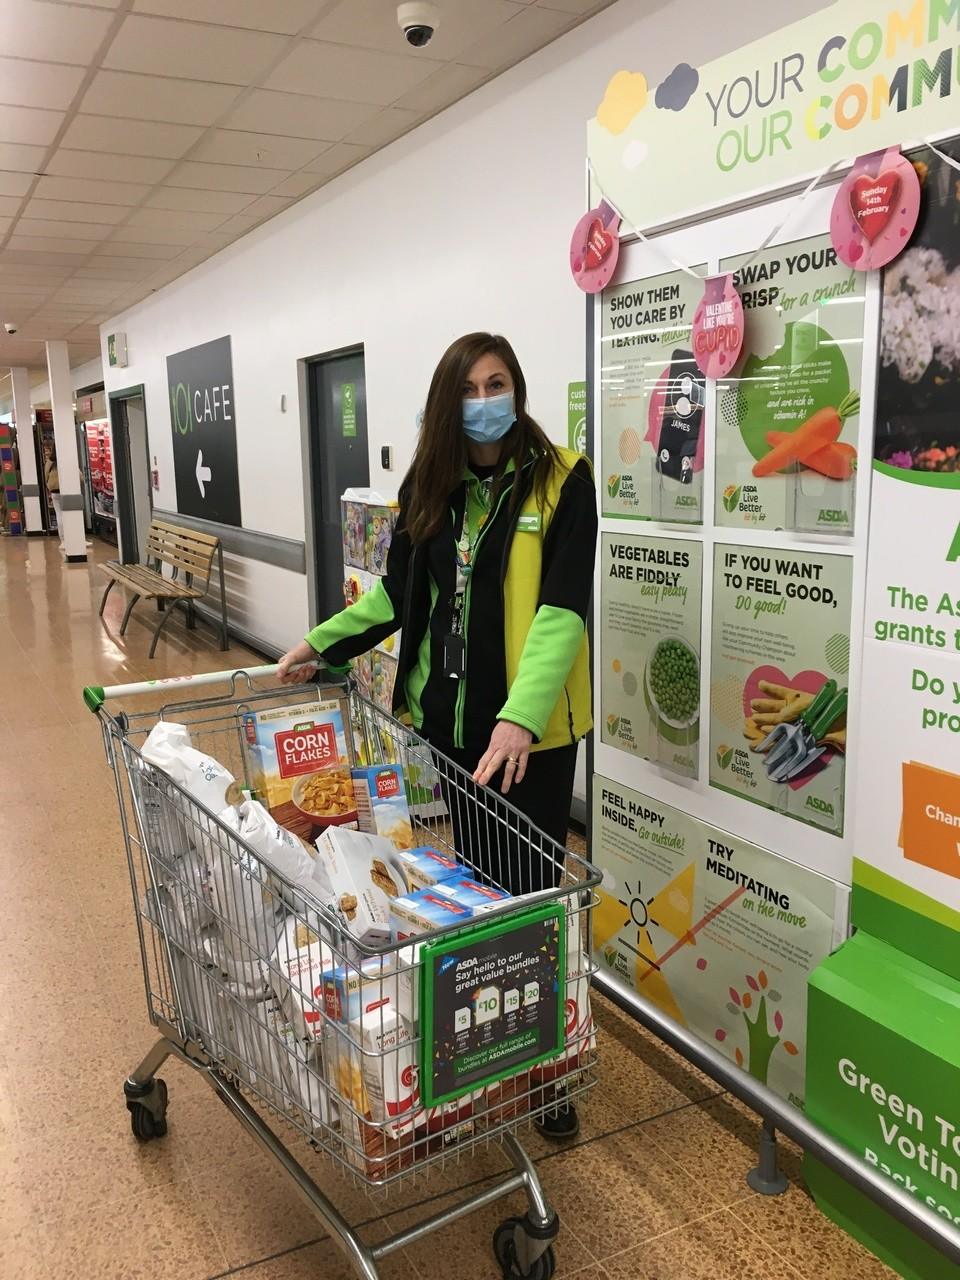 Food donations for our local food bank | Asda Longwell Green